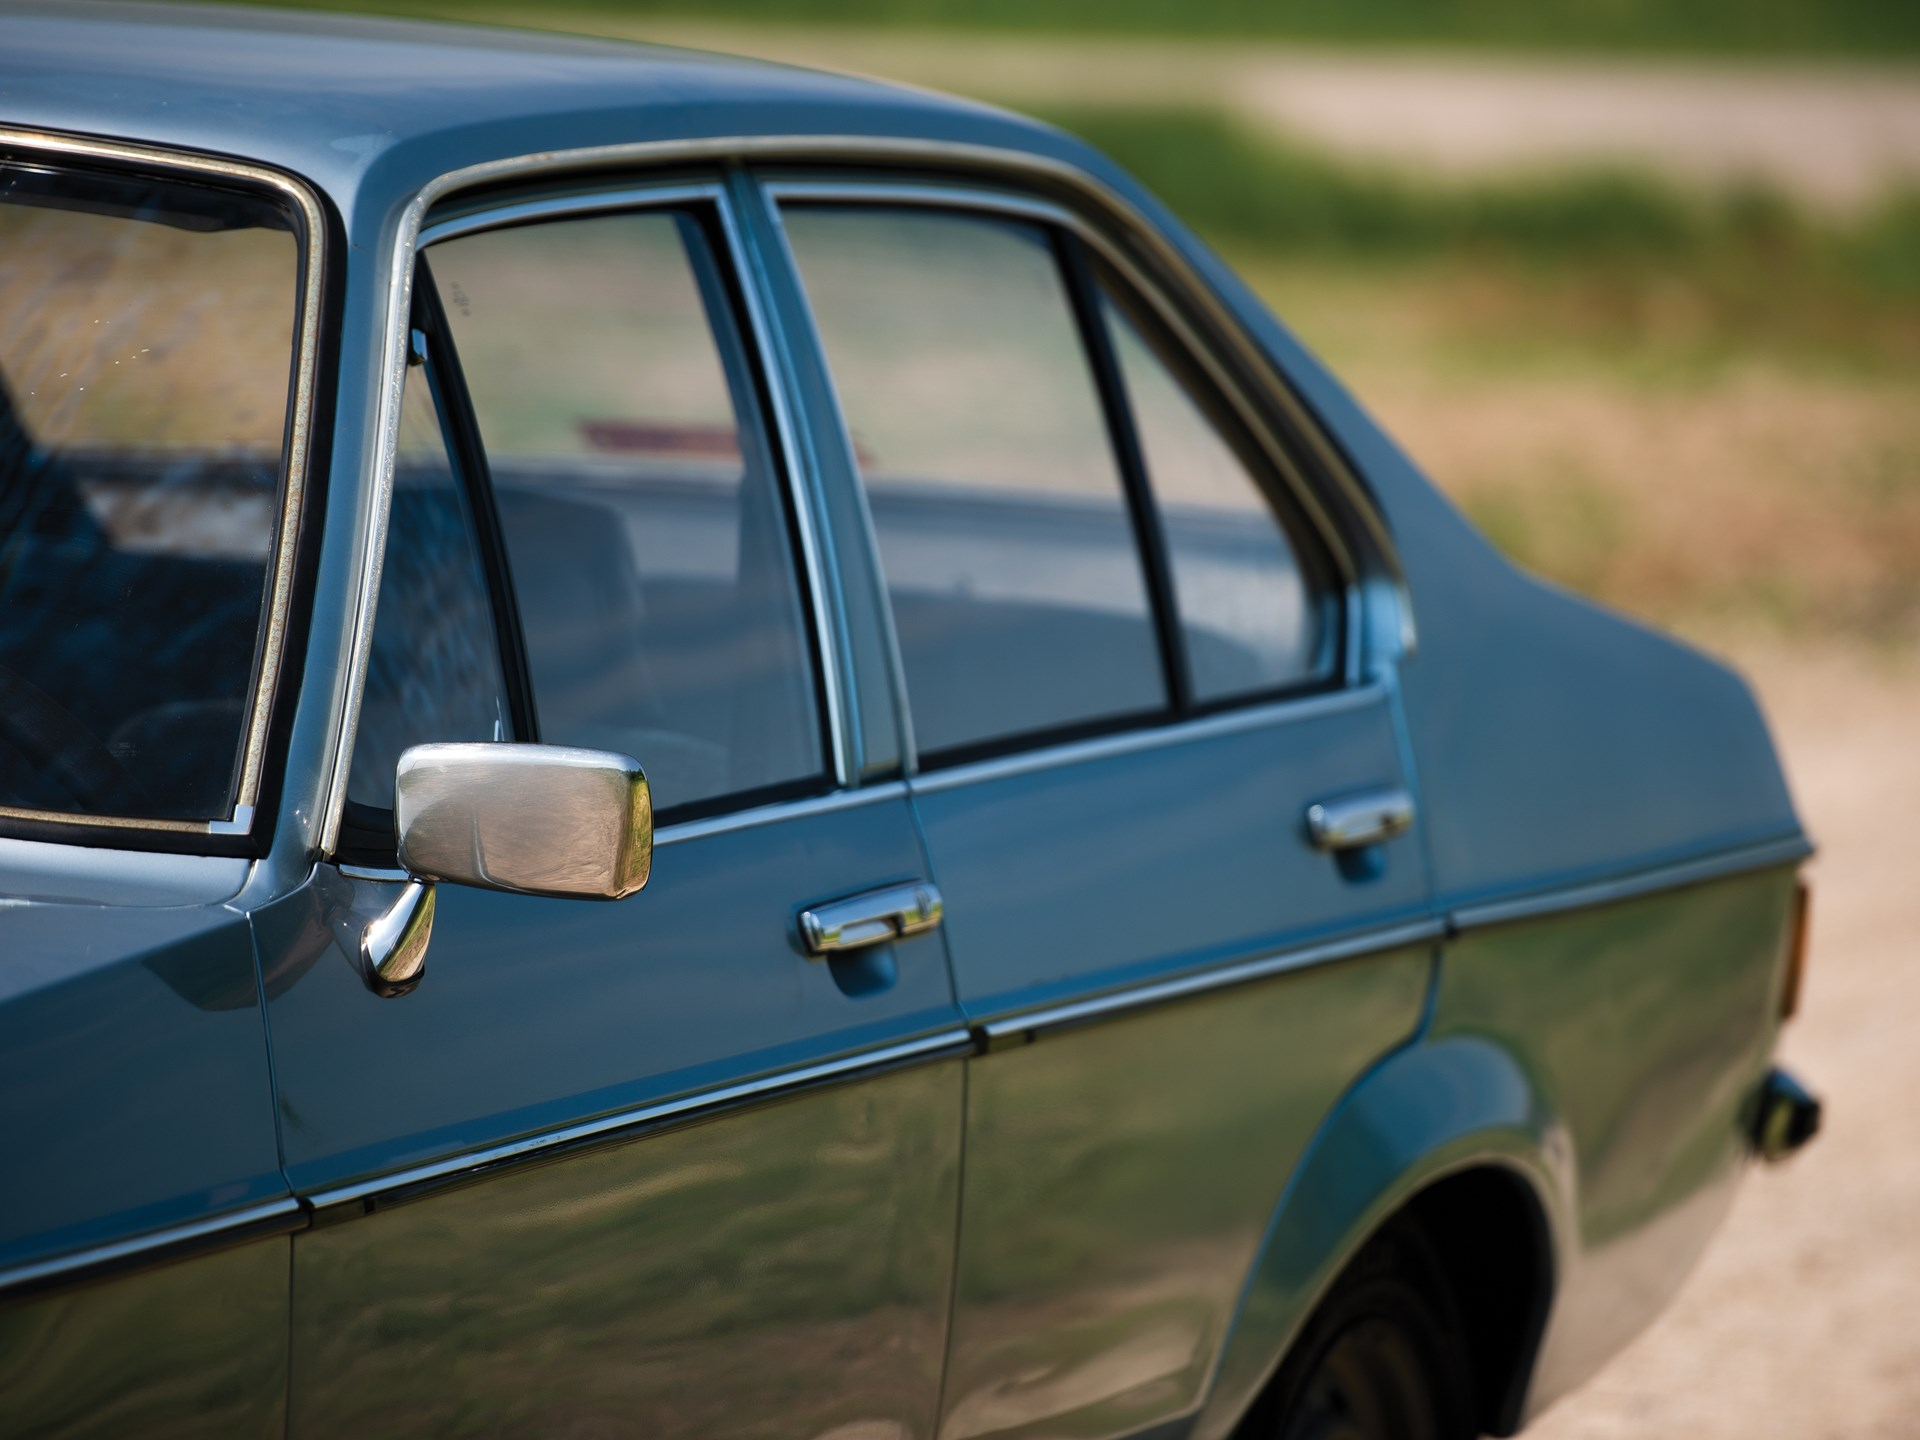 1976 Ford Escort 1100 GL Sedan